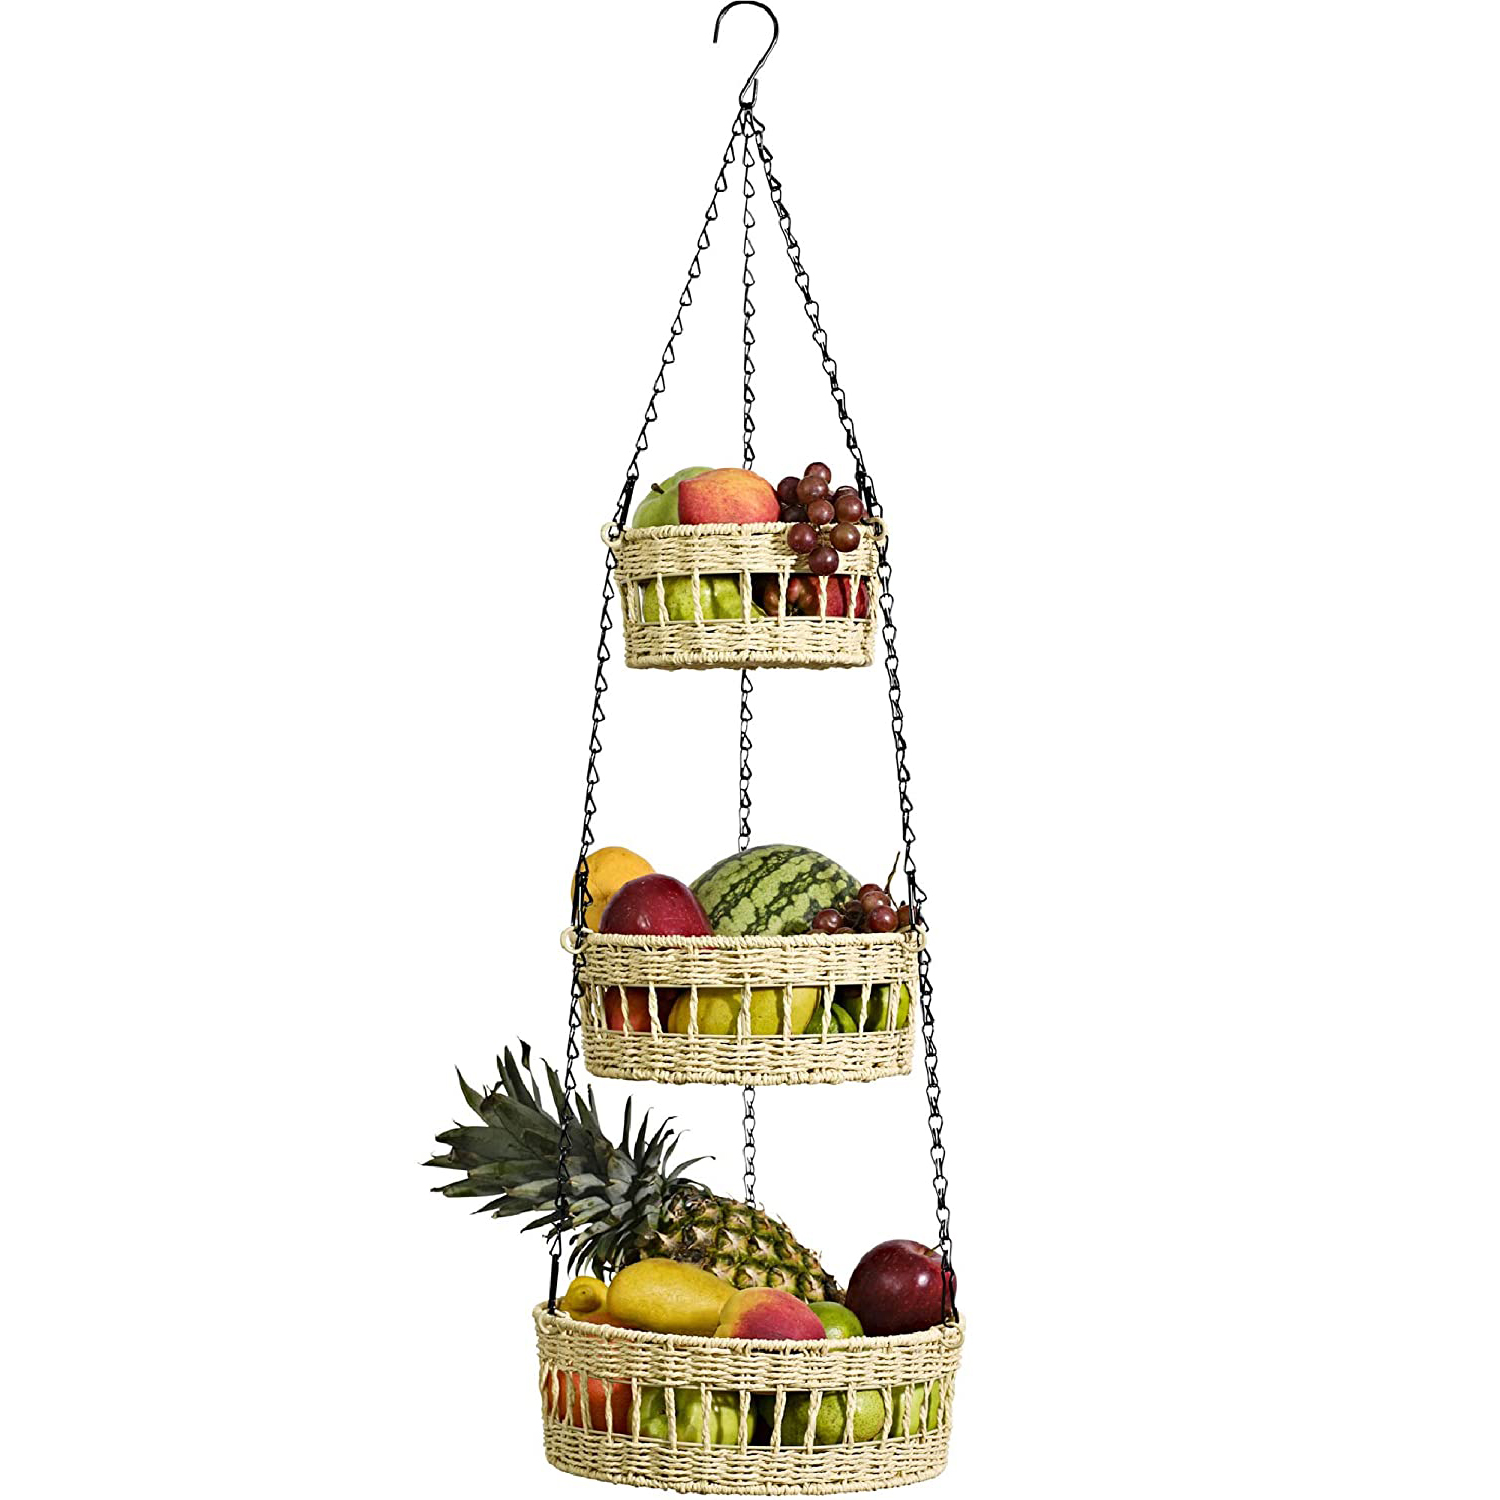 Hanging Fruit Stands Wall